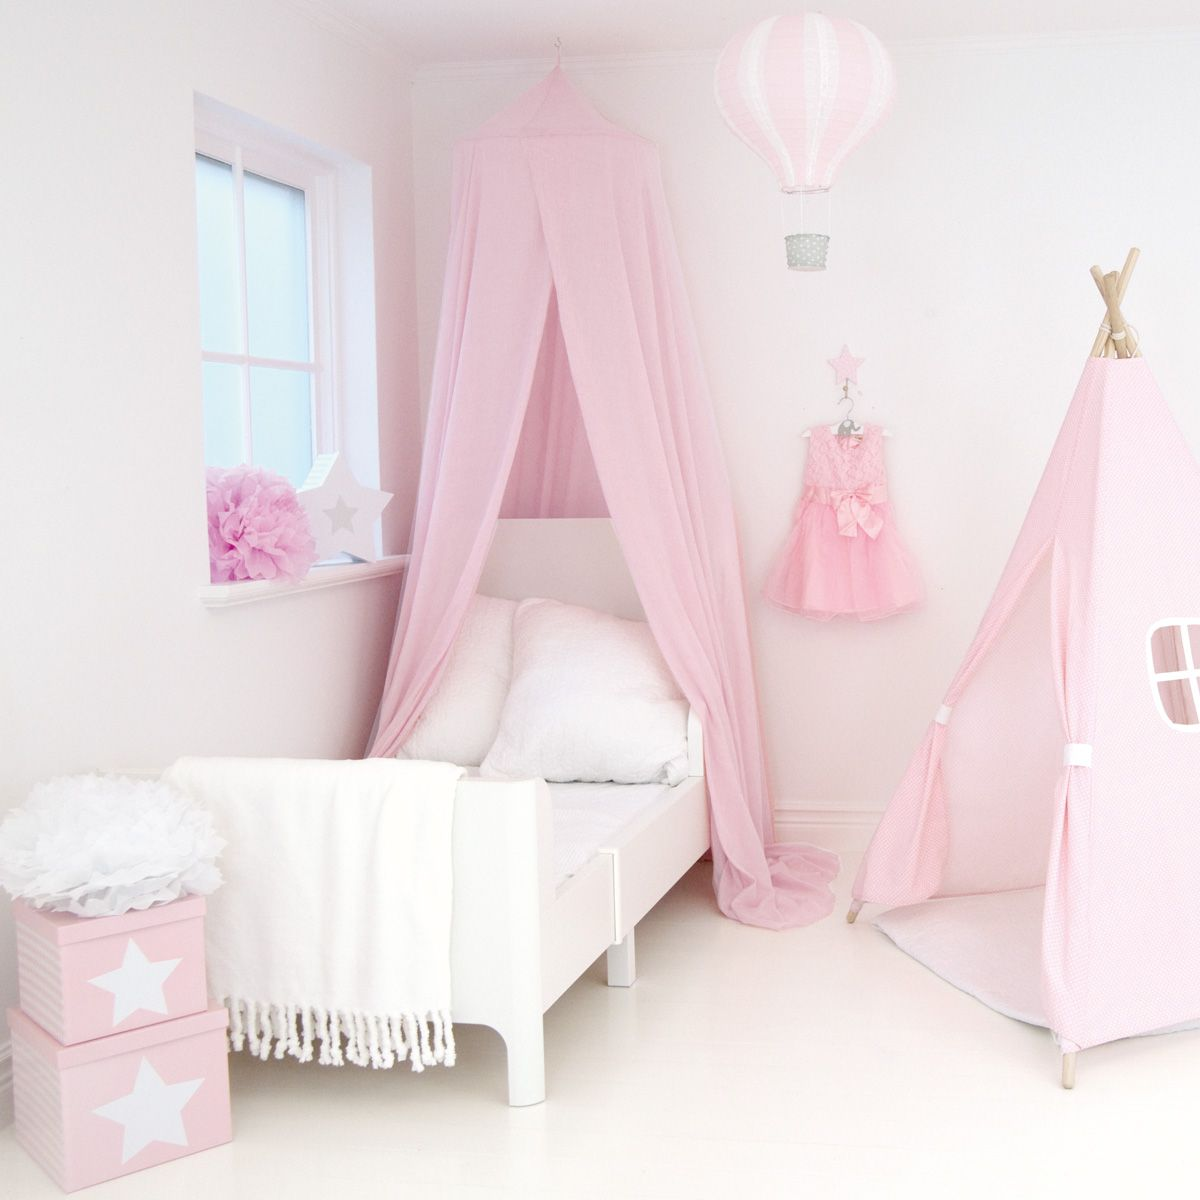 betthimmel baldachin rosa von jabadabado kaufen bei little roomers. Black Bedroom Furniture Sets. Home Design Ideas